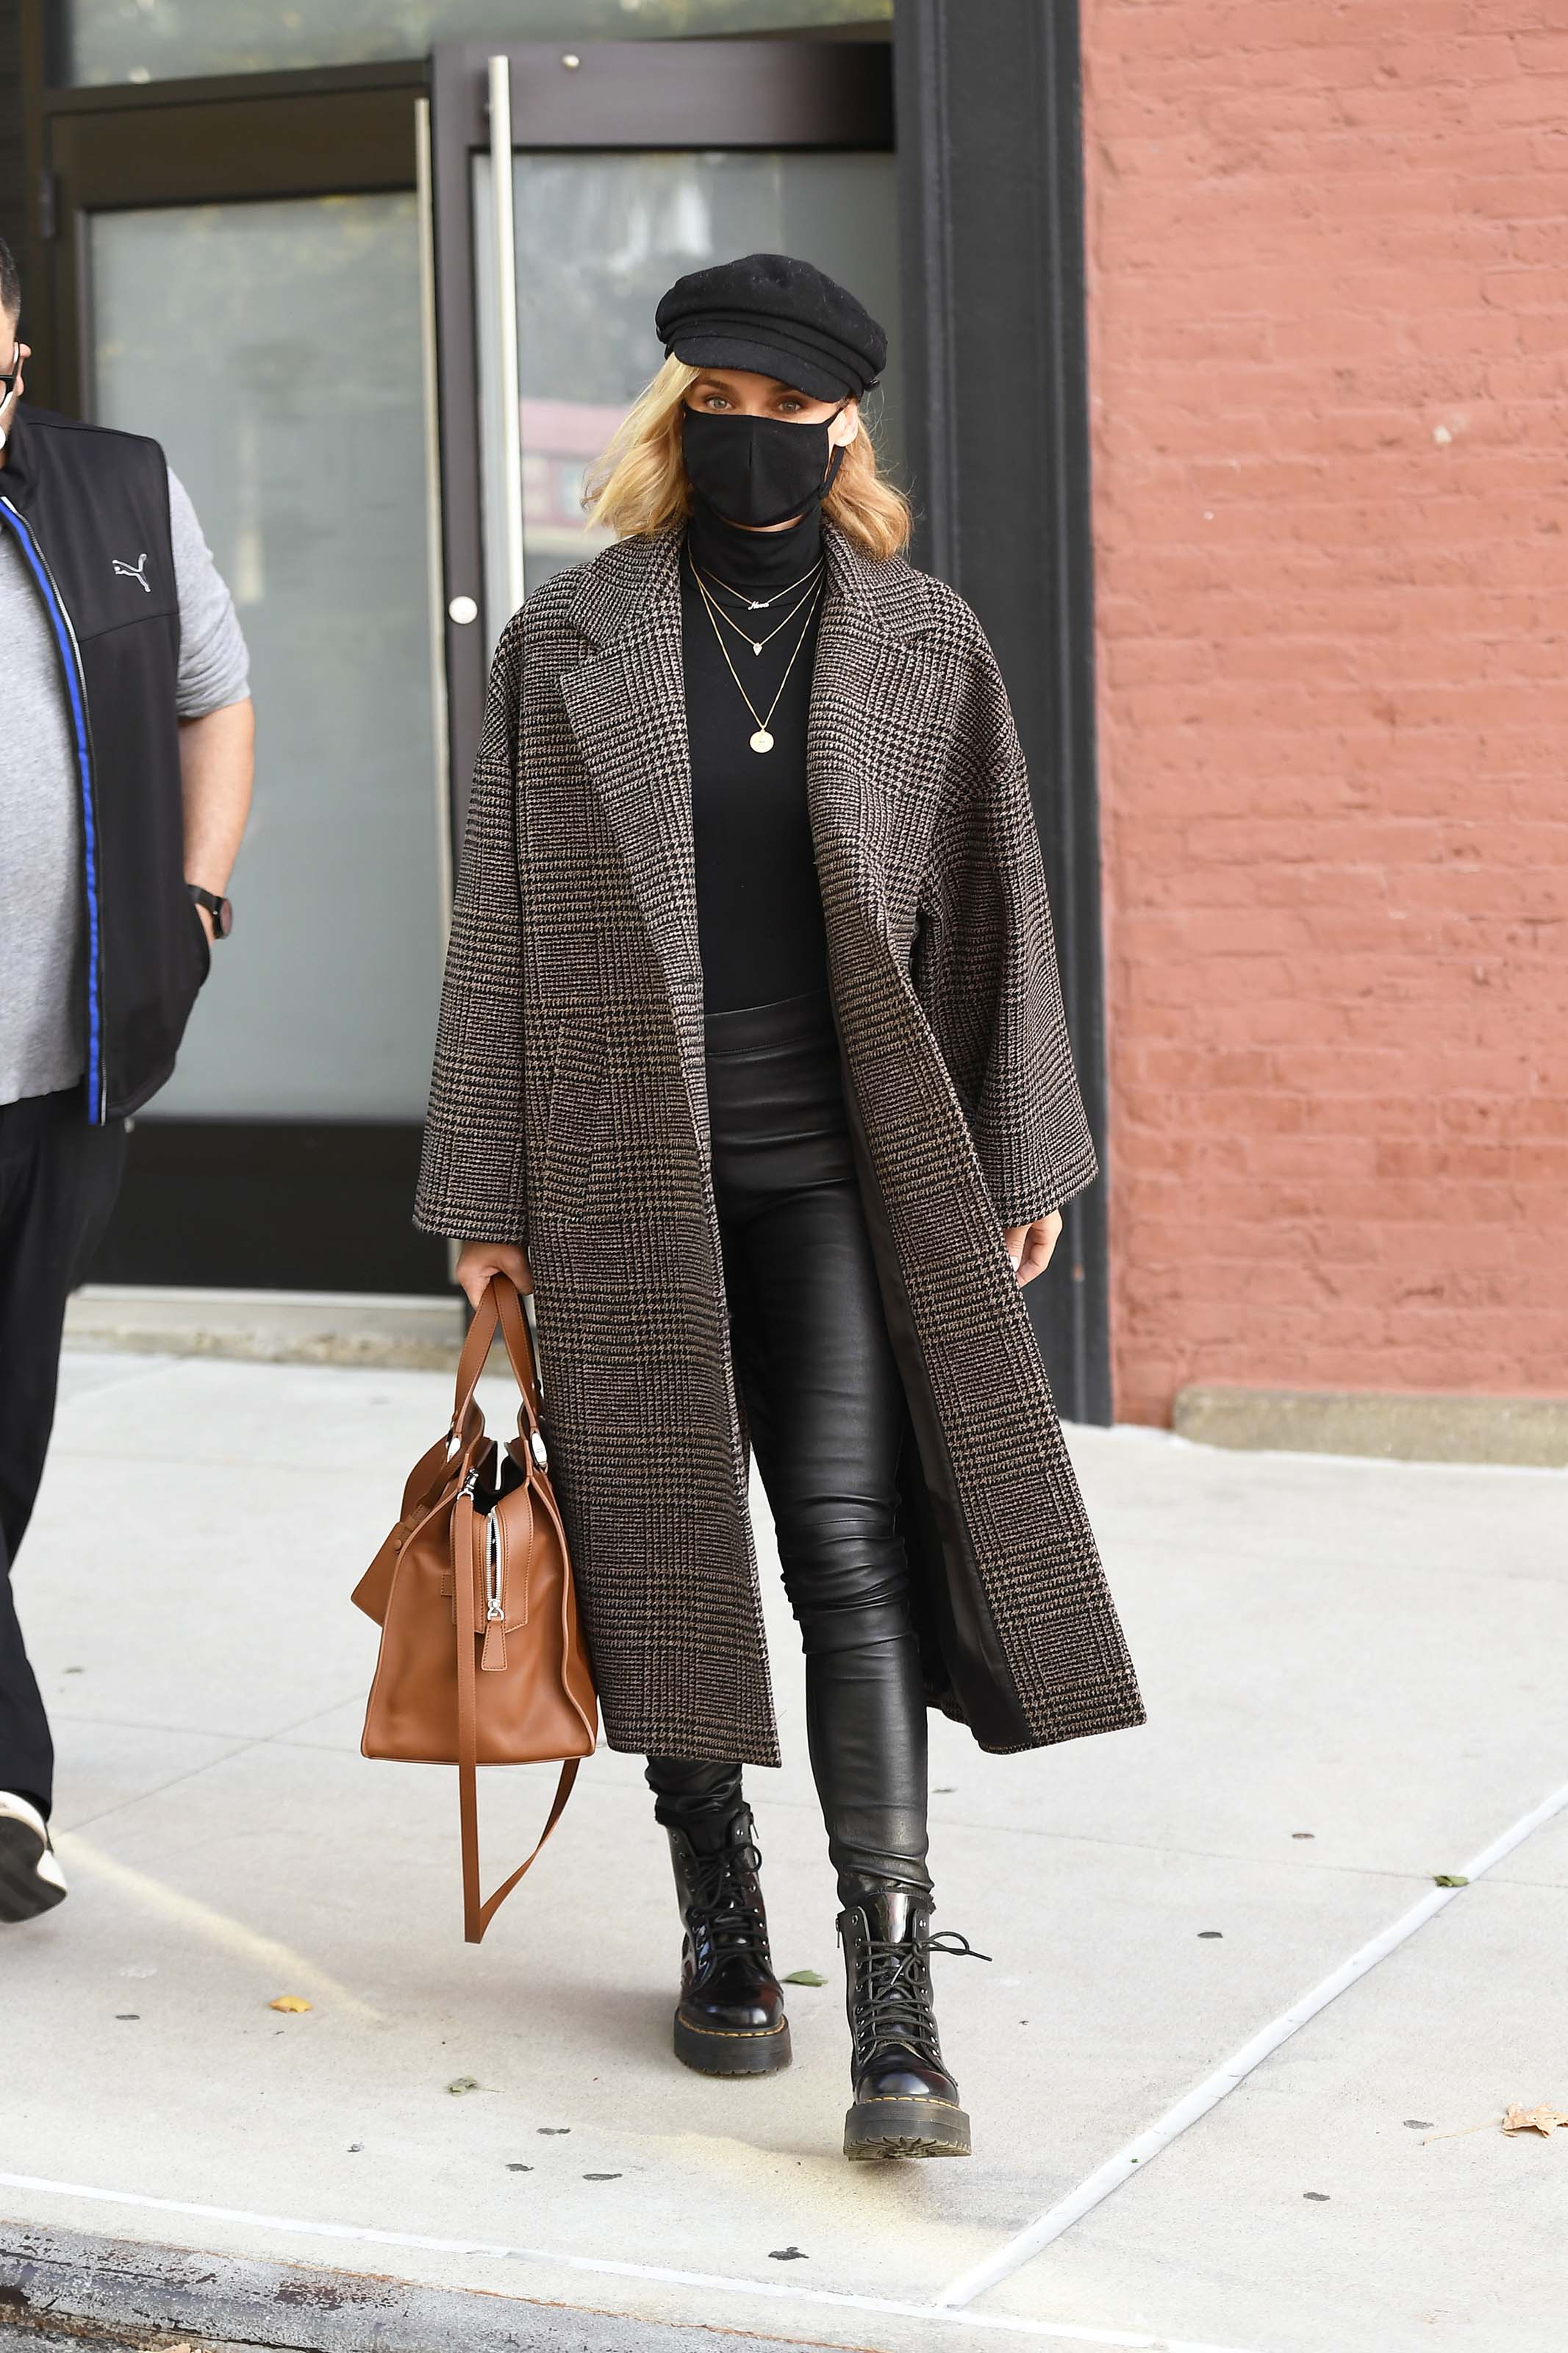 Diane Kruger leaving a photoshoot in New York City